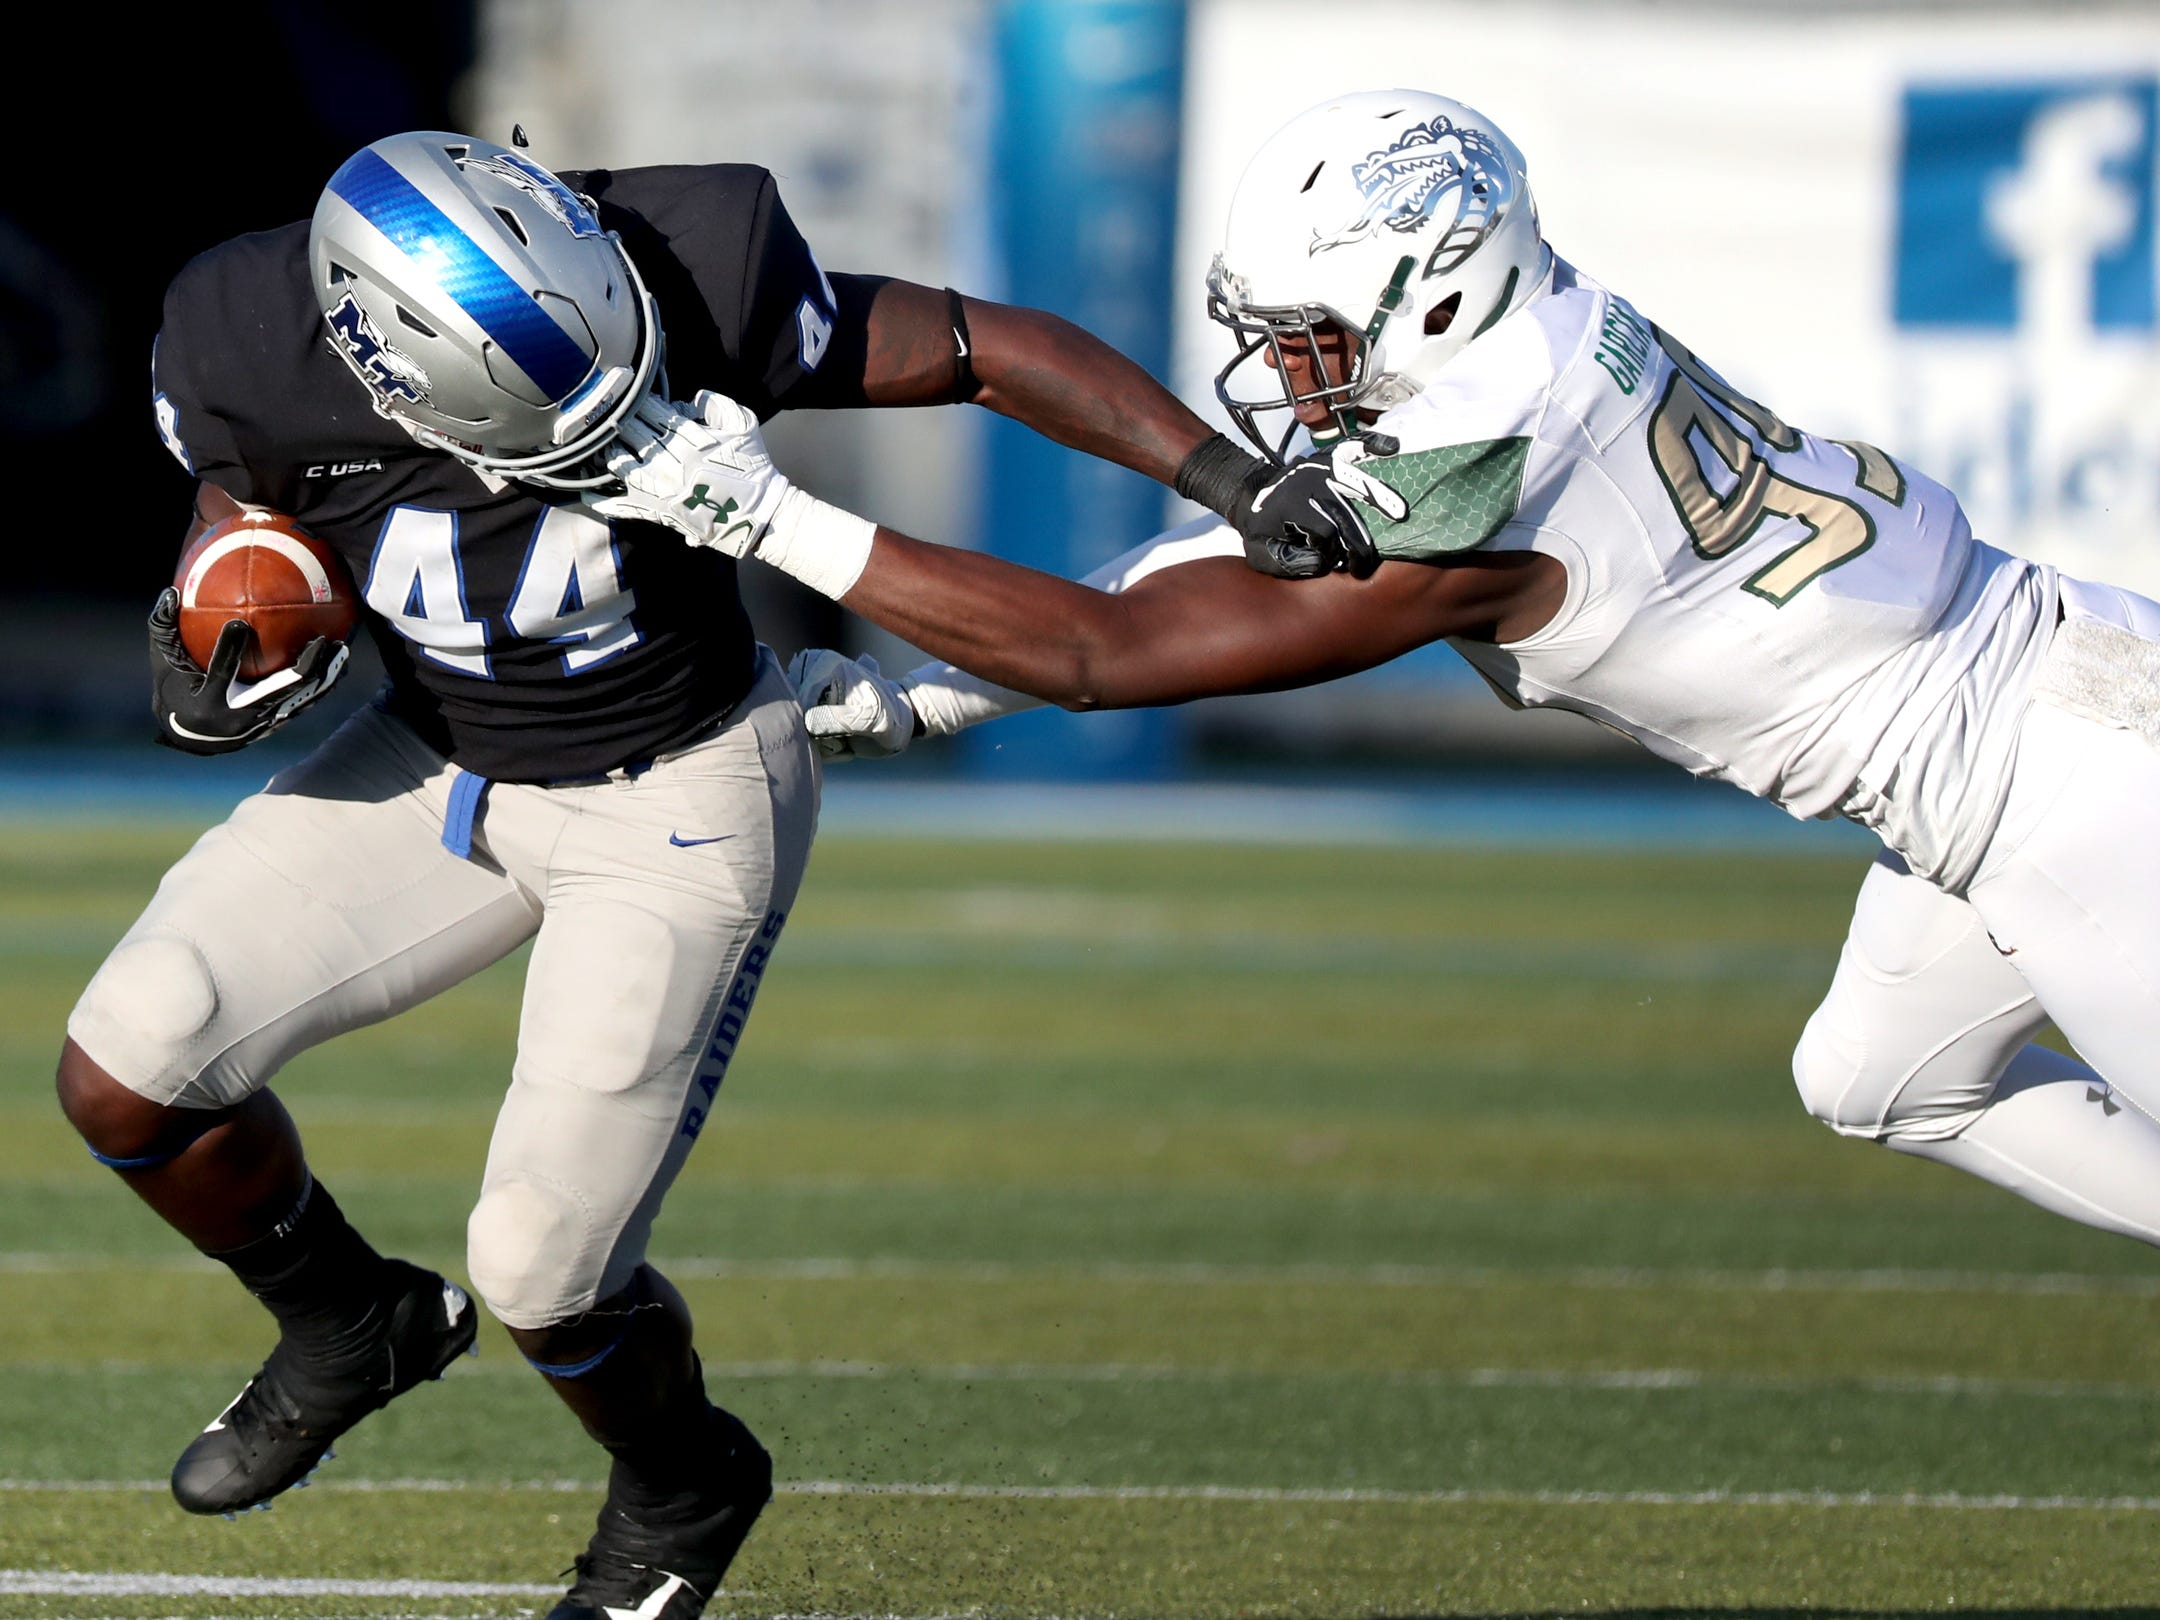 MTSU's Chaton Mobley 44) runs the ball as he is tackled and face masked by UAB's James Garcia-Williams (99) during the game at MTSU on Saturday, Nov. 24, 2018.